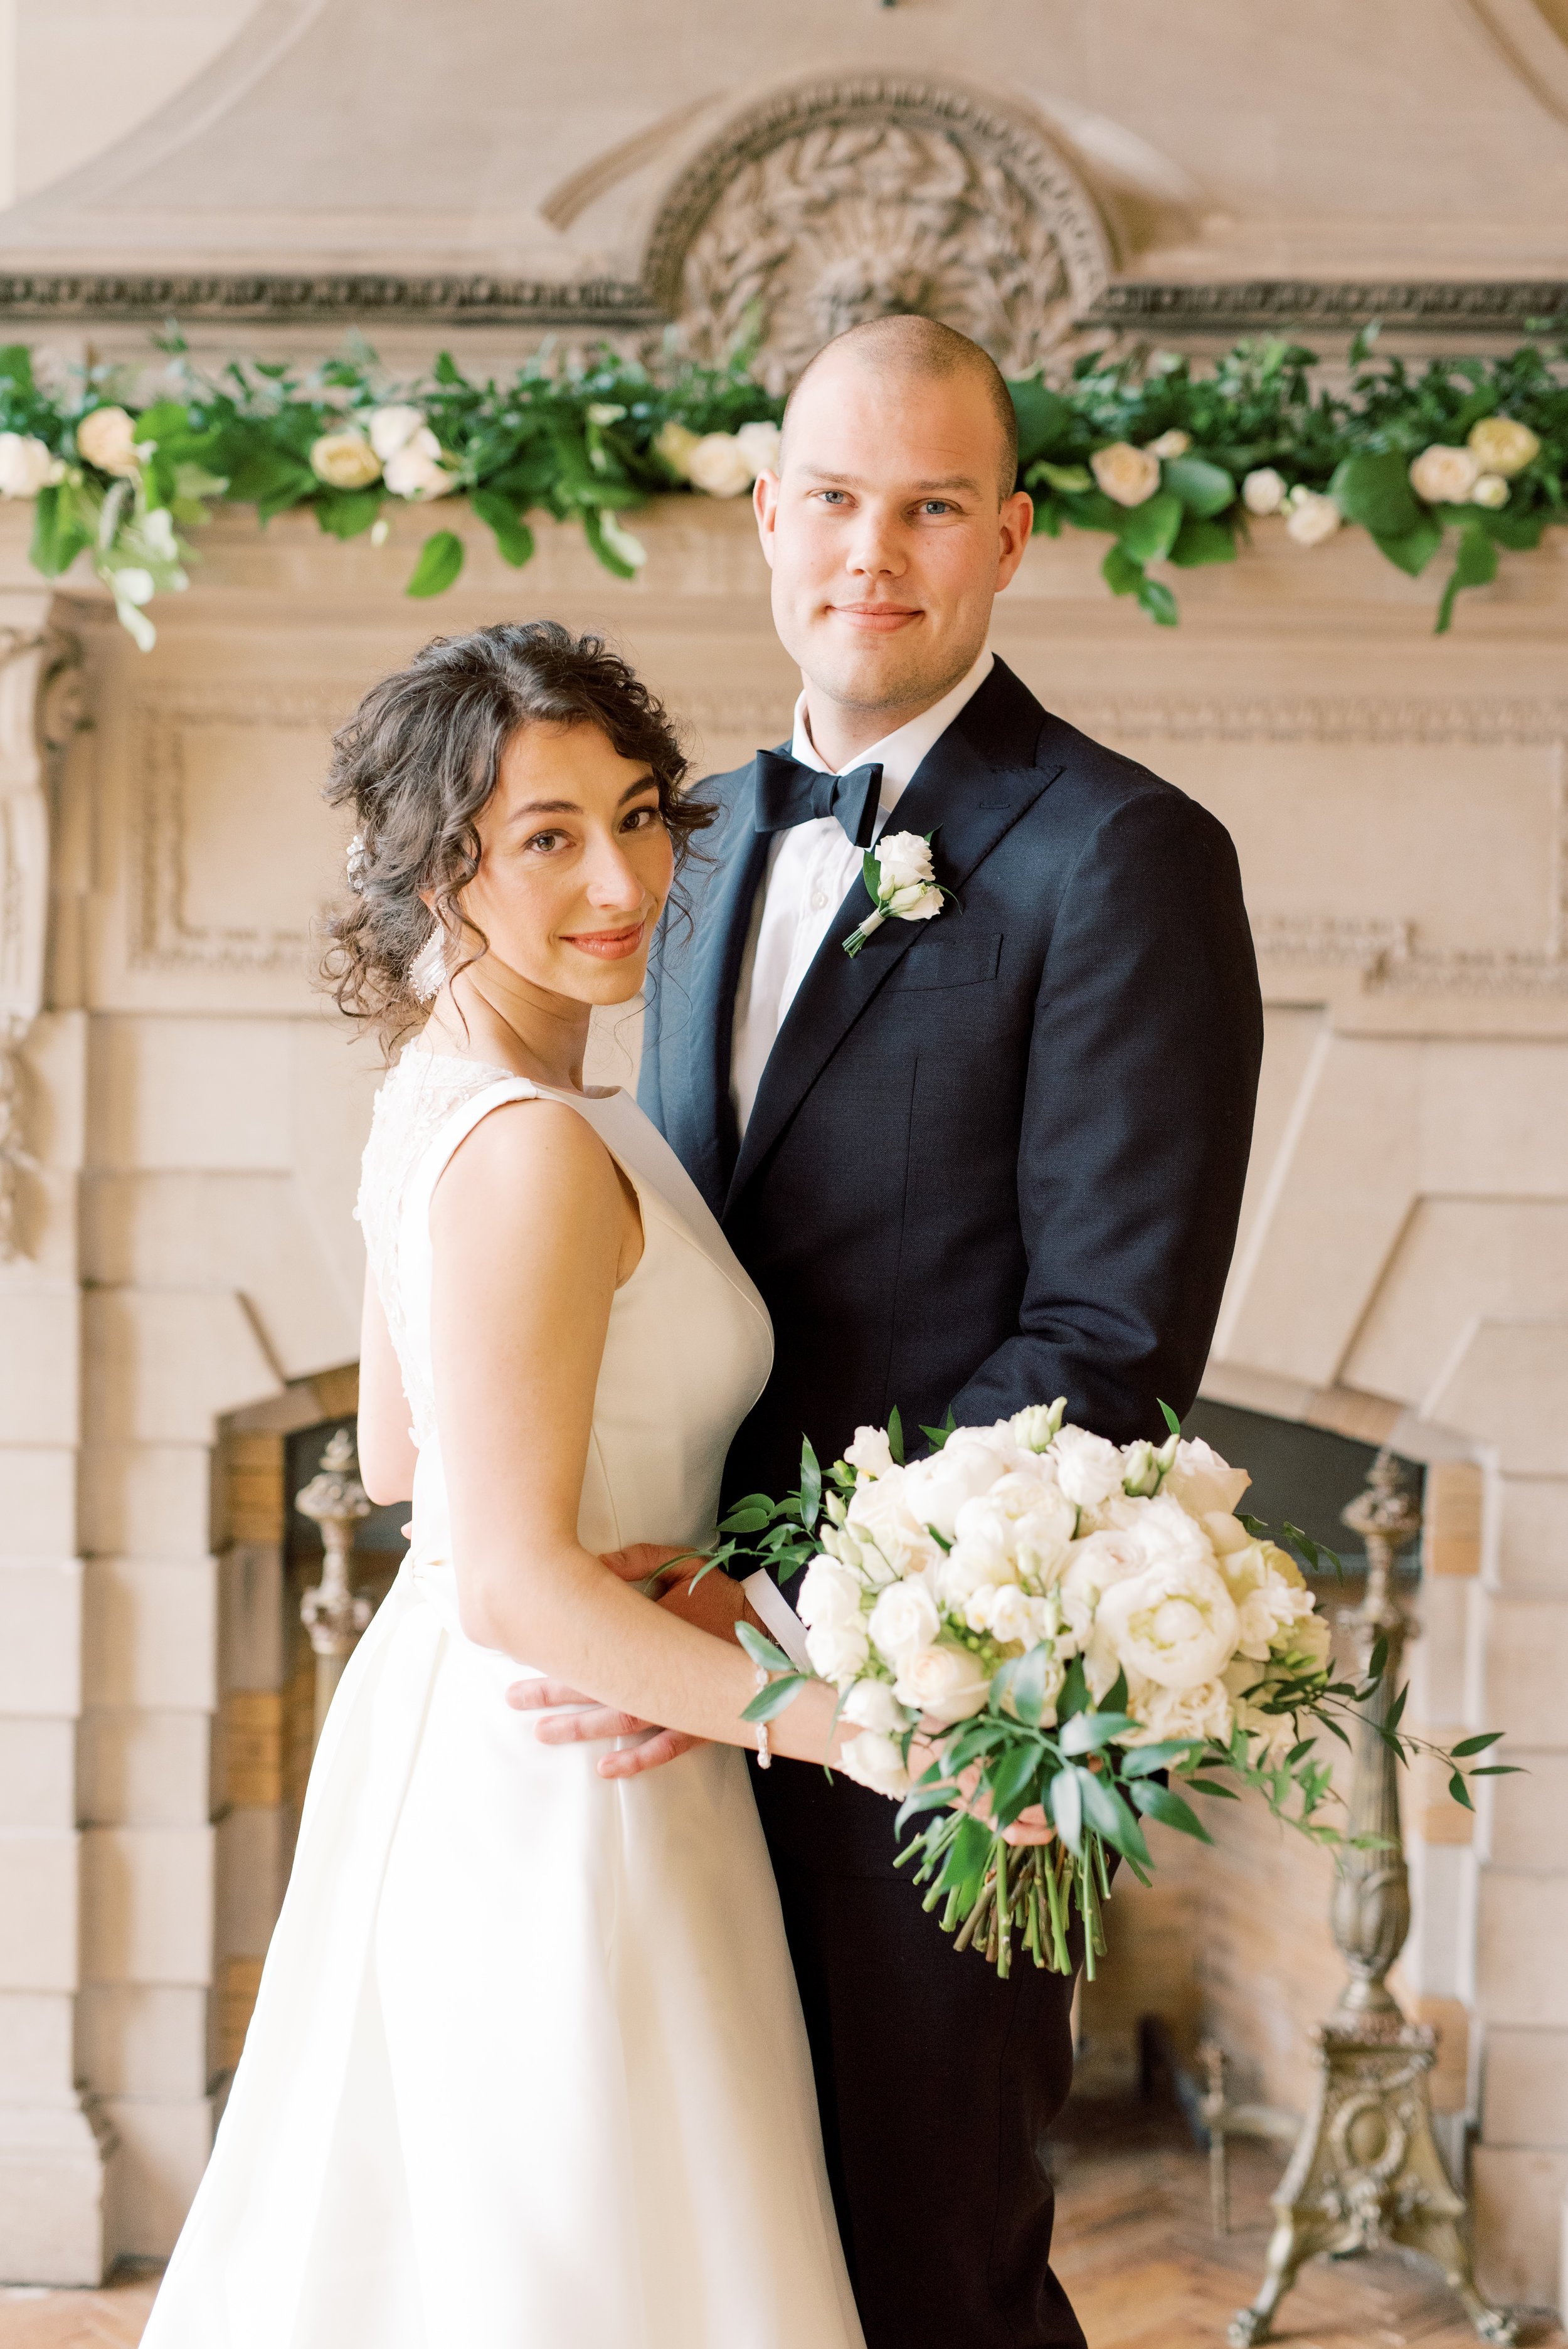 Gah, we just love the classic look of this bride and groom from their romantic and classic wedding day for their french inspired green and white Cairnwood Estate wedding